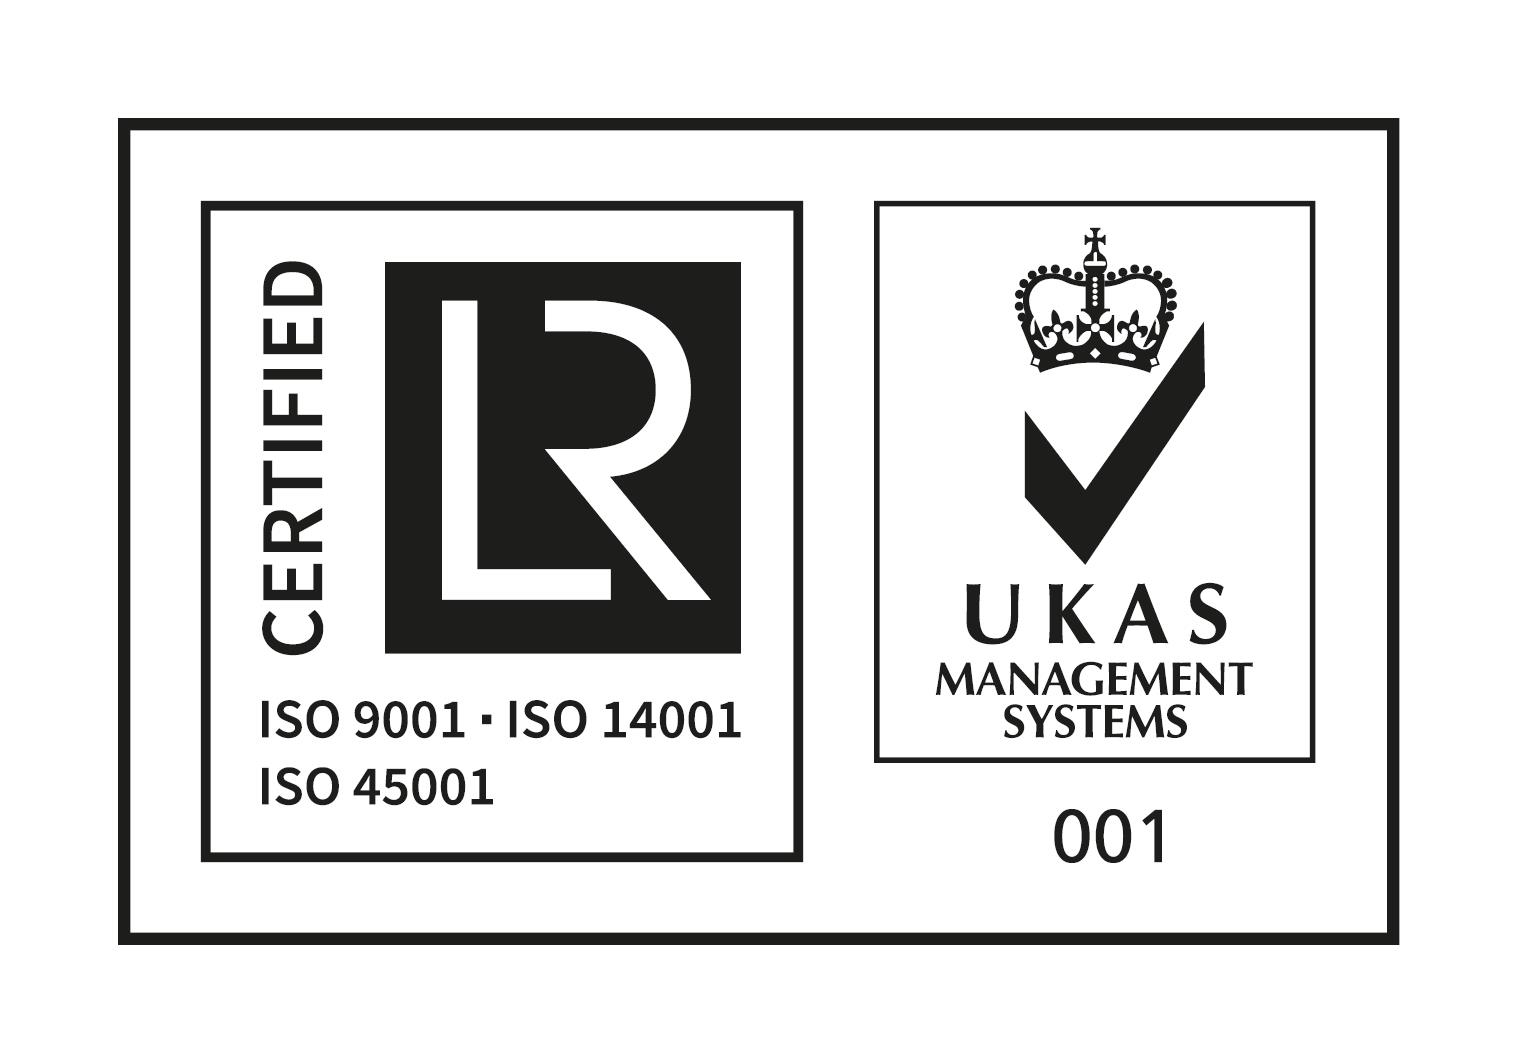 Lloyd's Register, ISO 9001, ISO 14001, ISO 45001, UKAS Management Systems